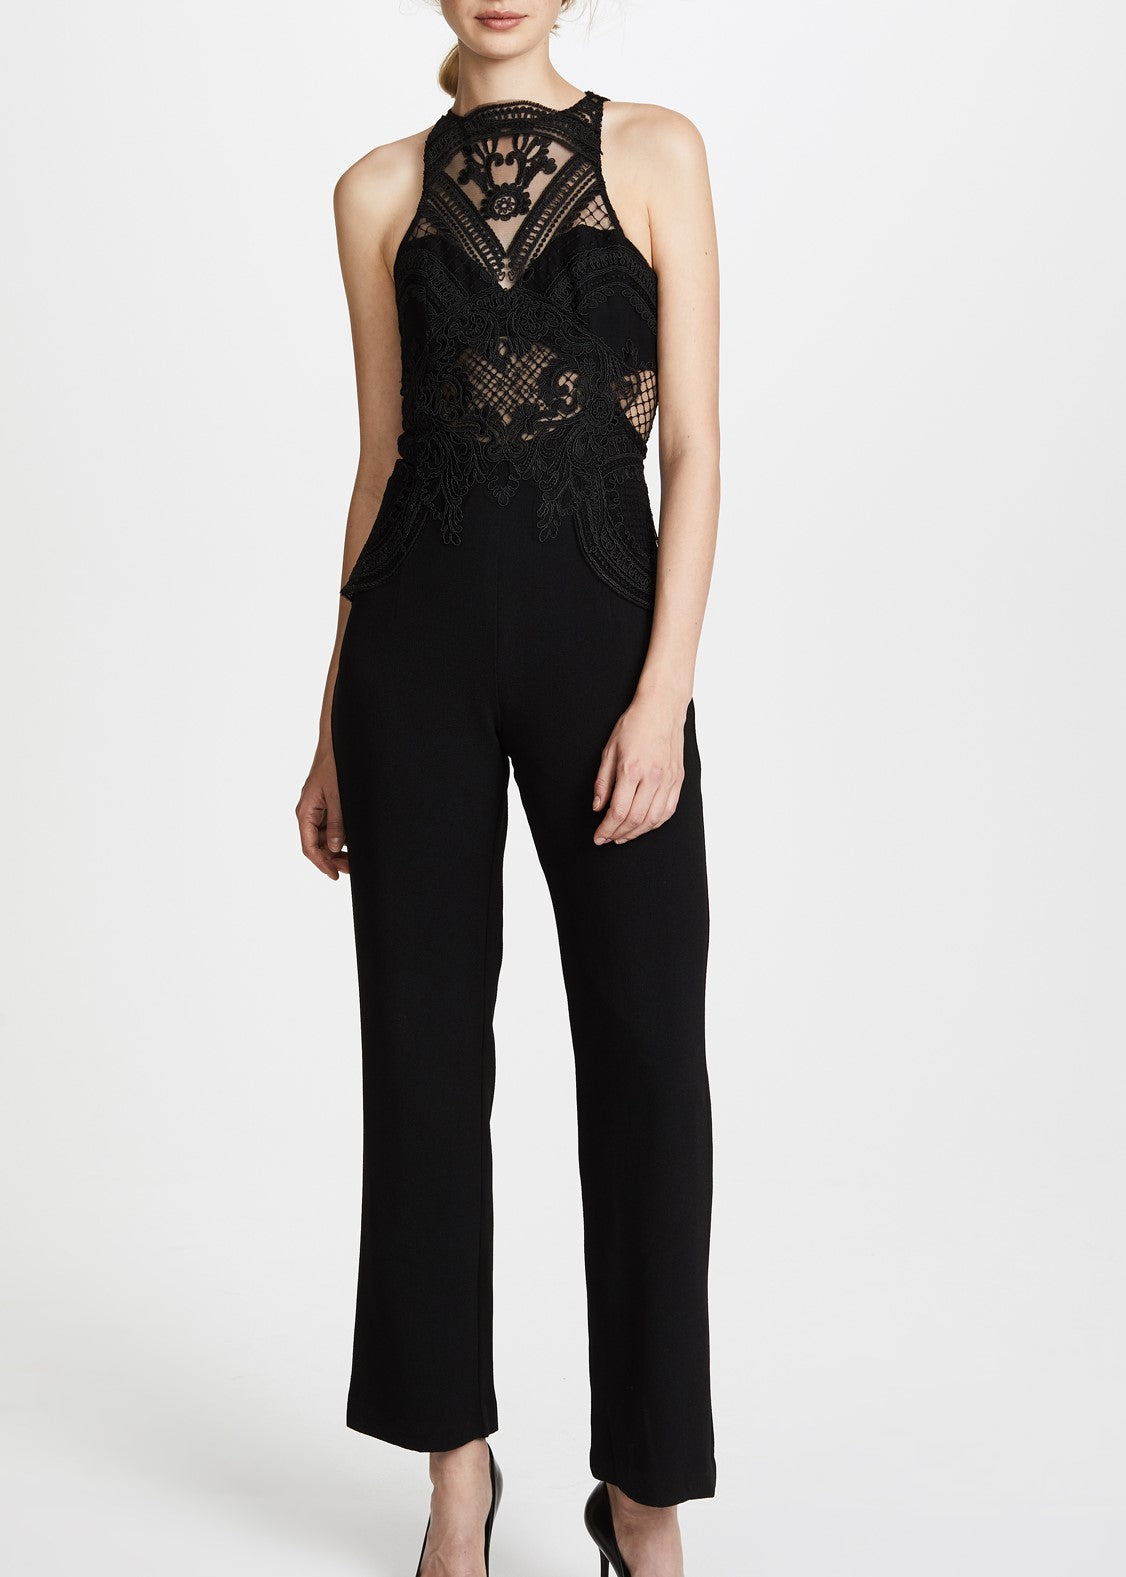 Thurley Chameleon jumpsuit black